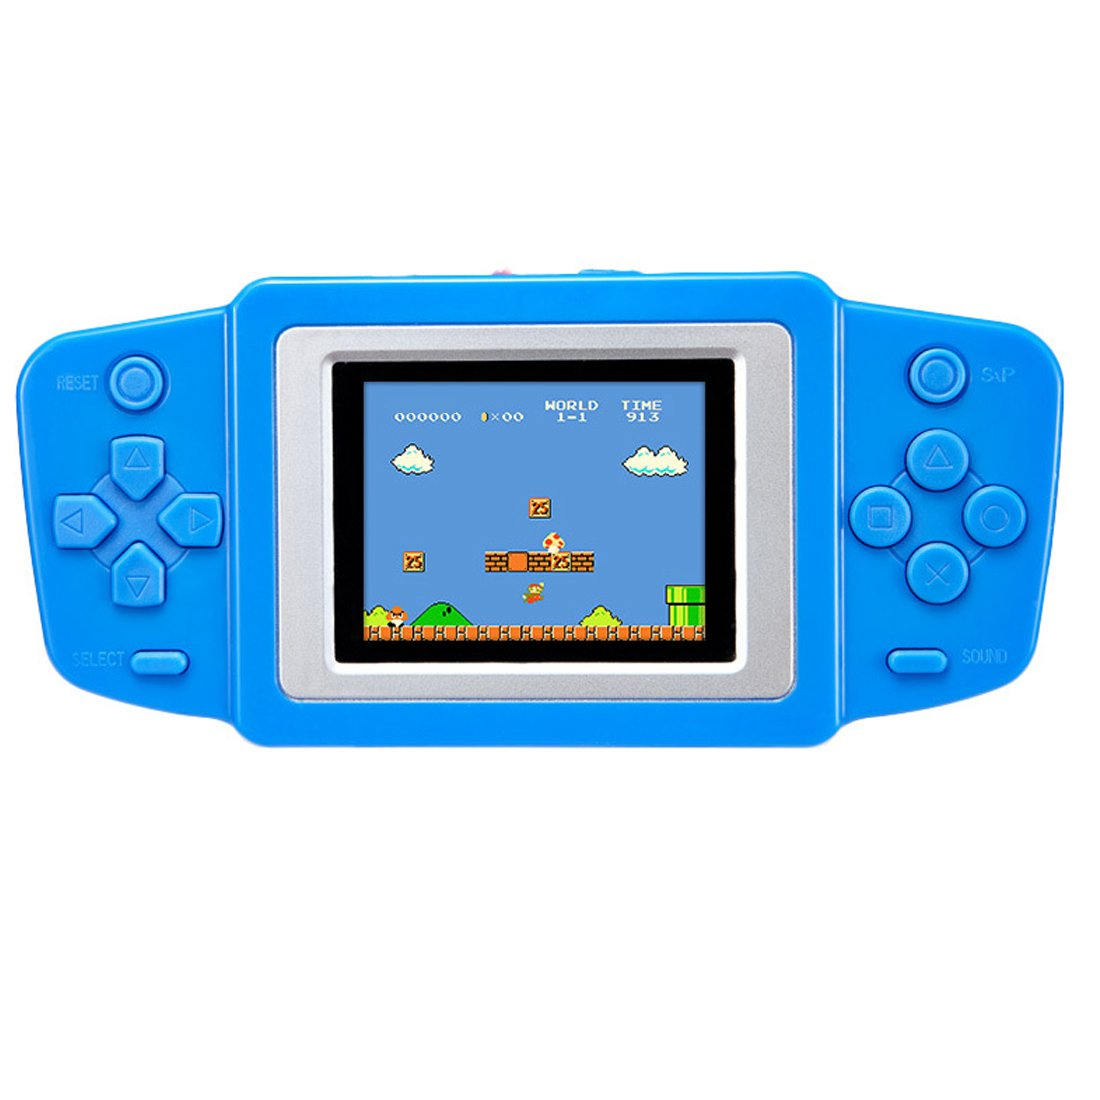 ZHISHAN Retro Handheld Game Console for Kids with Built in 268 Classic Old Games Portable Gaming Player Arcade Playstation System Birthday Gift for Children Boys (Blue)